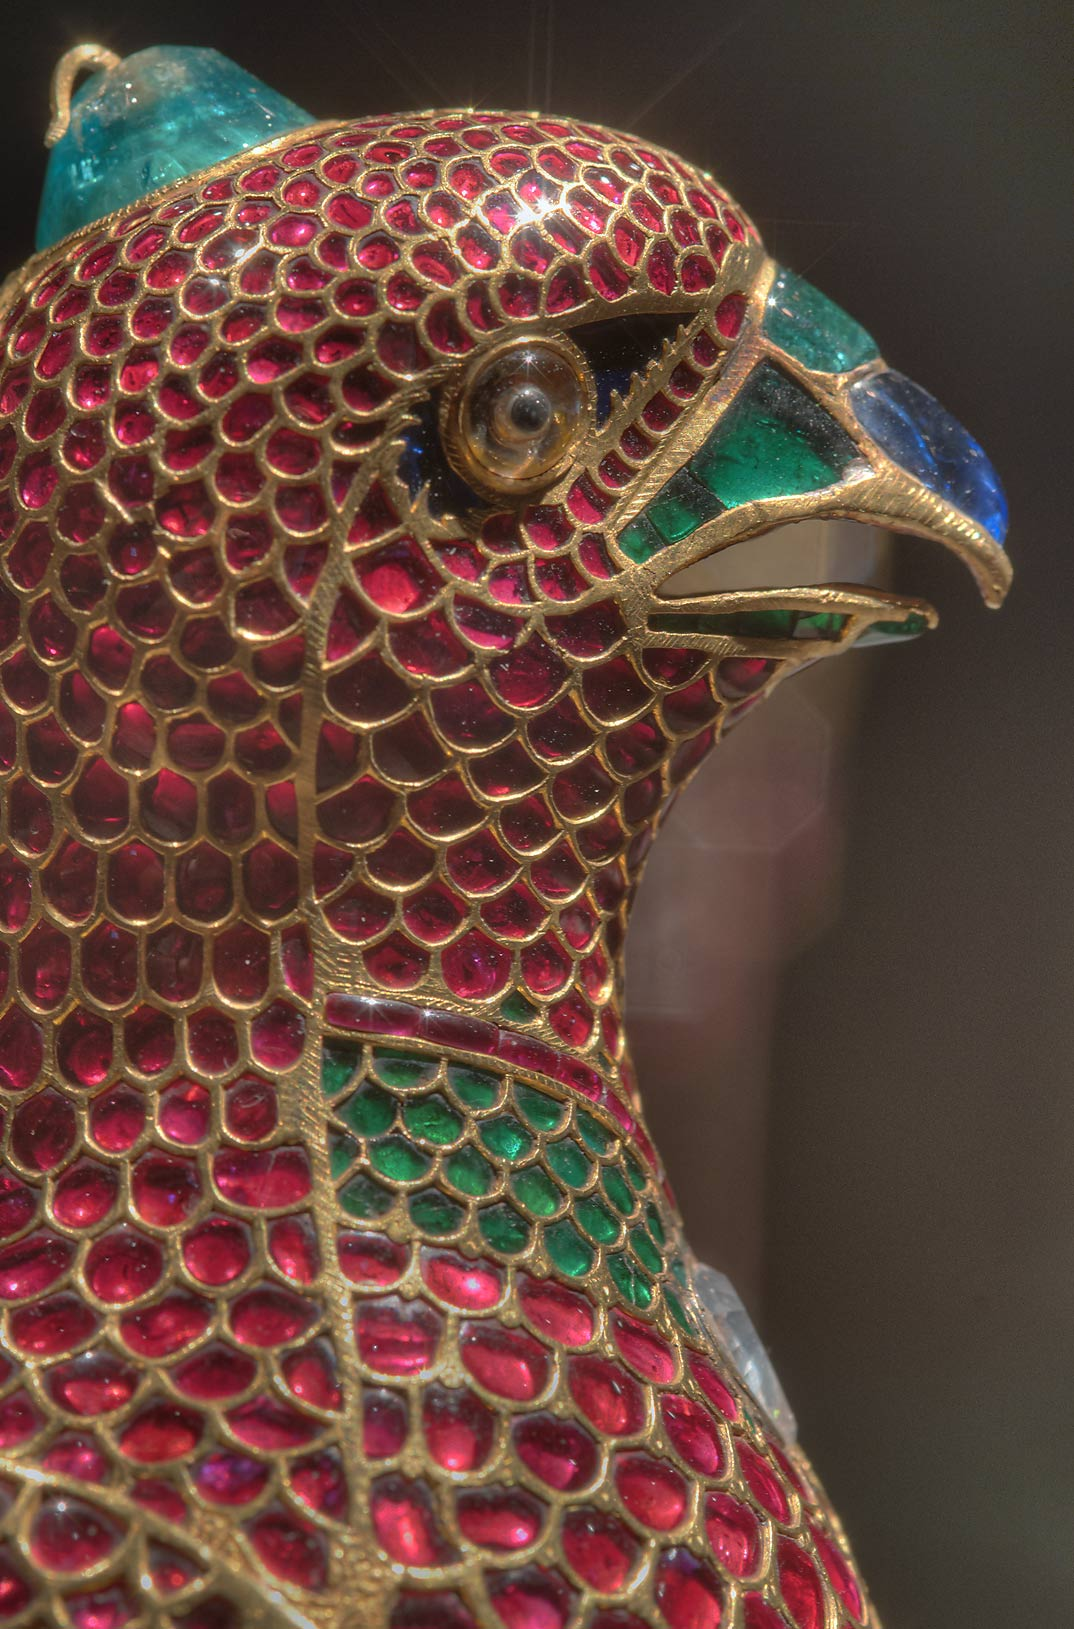 Enamel on a head of jeweled falcon (India, c...in Museum of Islamic Art. Doha, Qatar